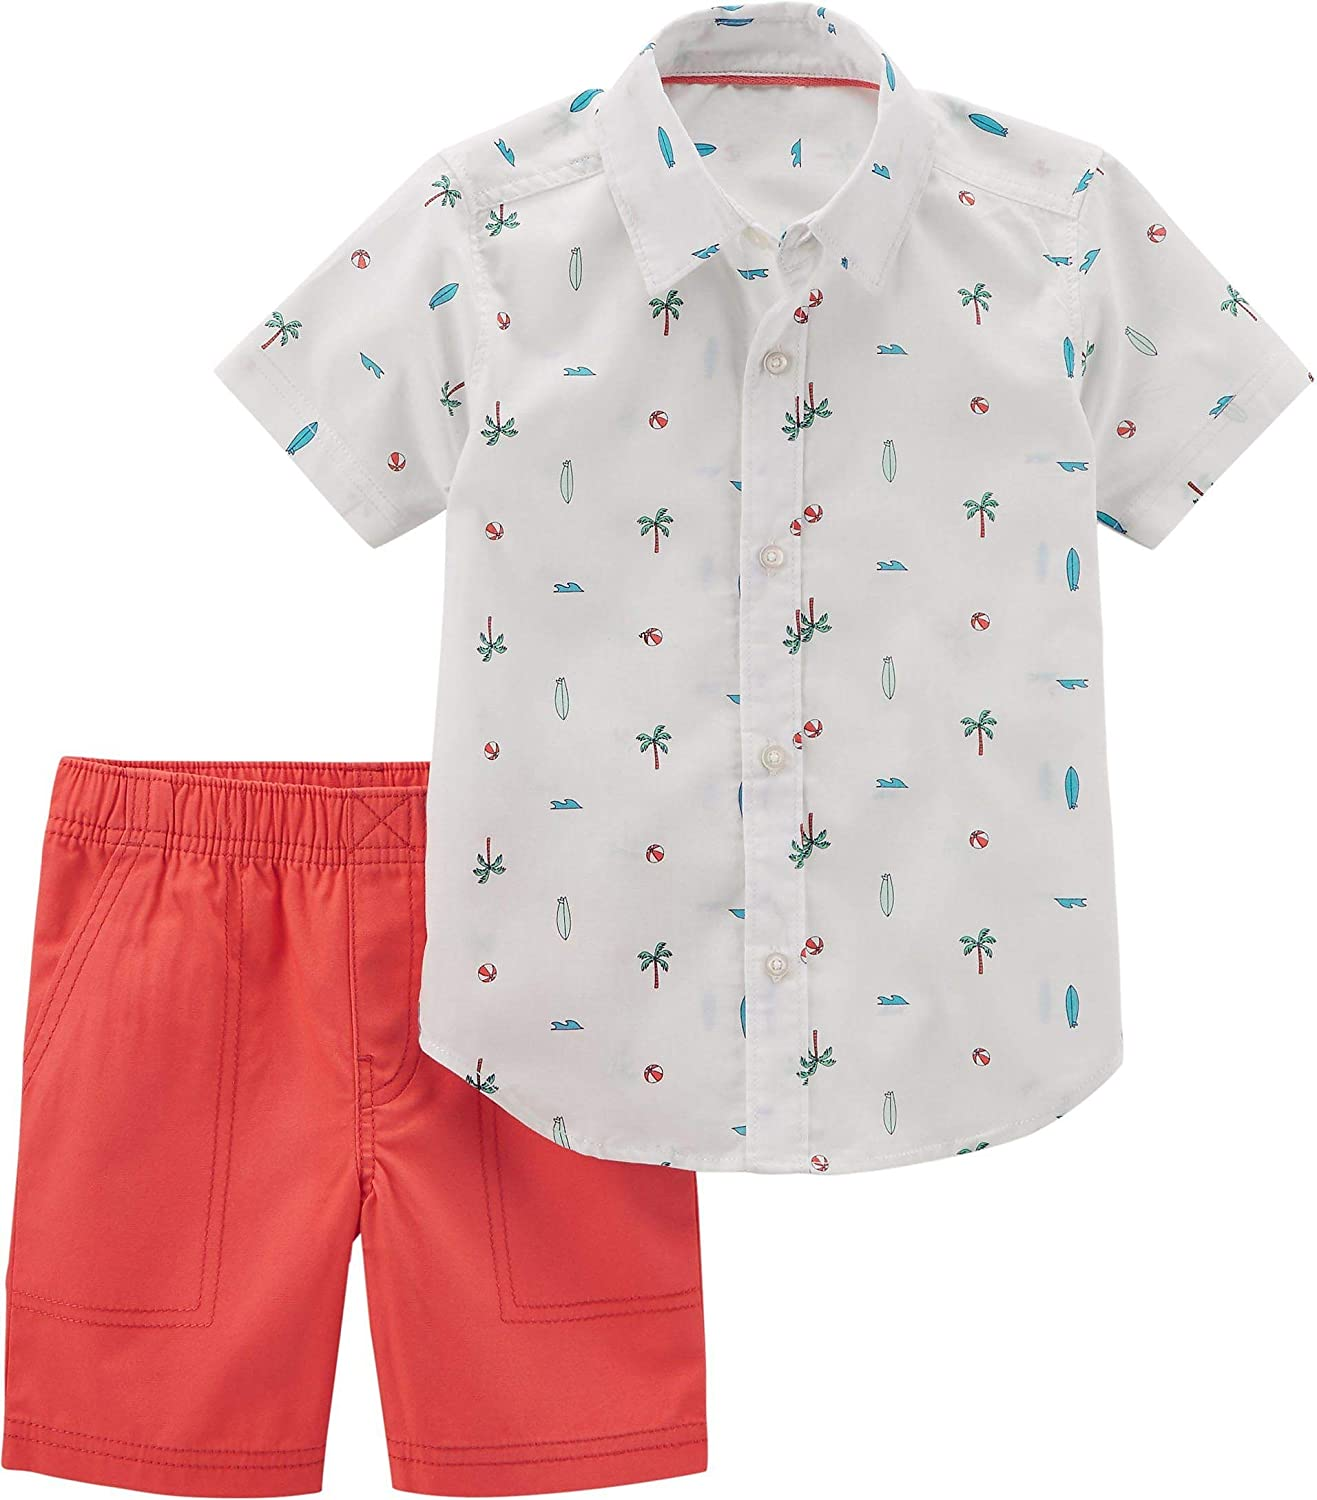 Best Friends Tee and Shorts Set Carters P000551660 Carters Boys 2T-5T 2-Pc